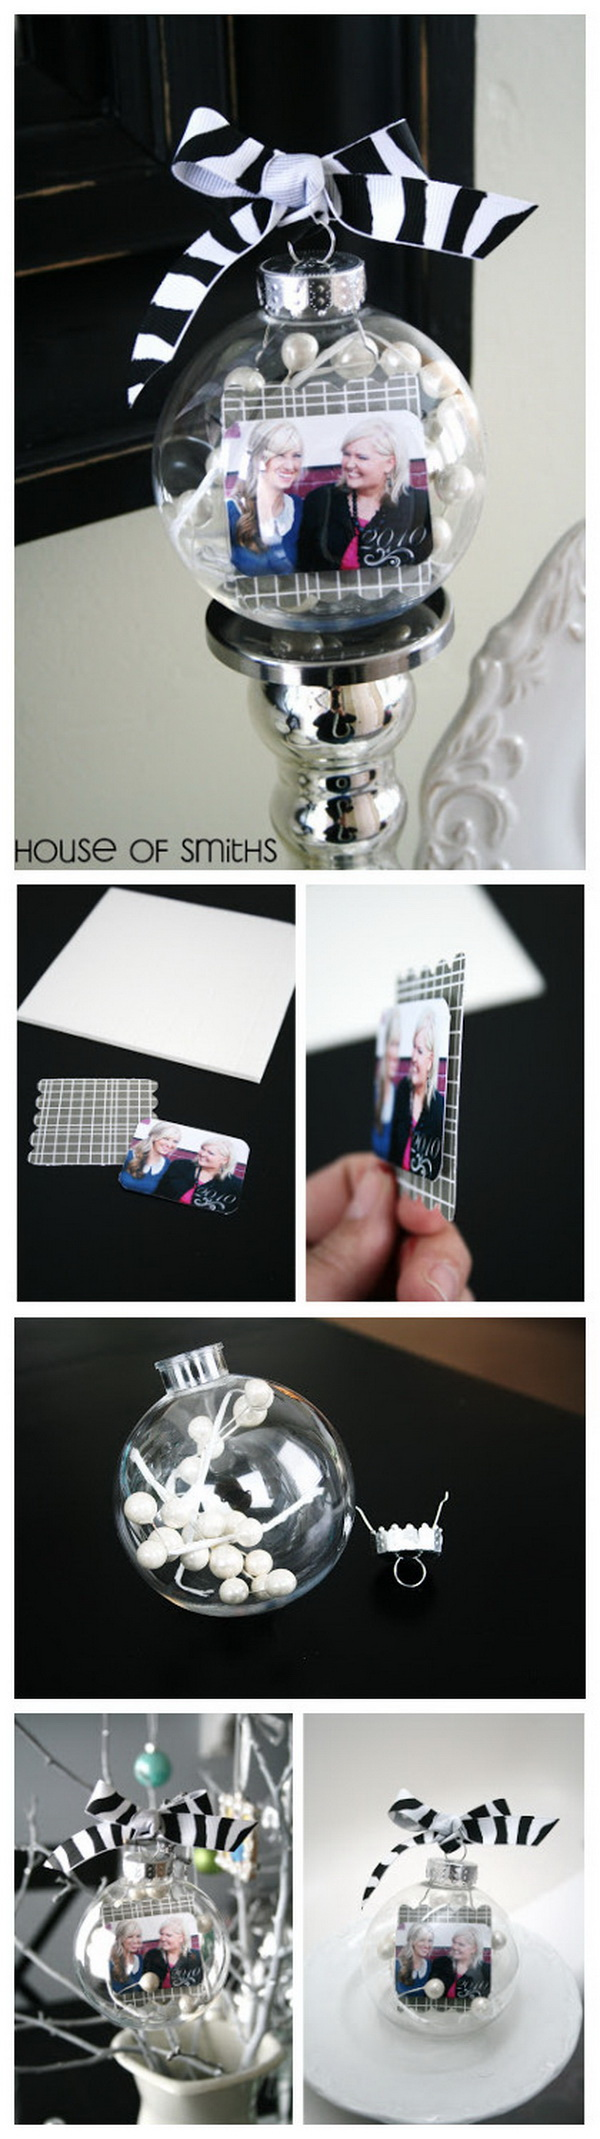 DIY Photo Ornaments. Personalize the plastic ornaments from the dollar store with berry stems and your favorite photos inside. This can also be a perfect gift for your loves ones.